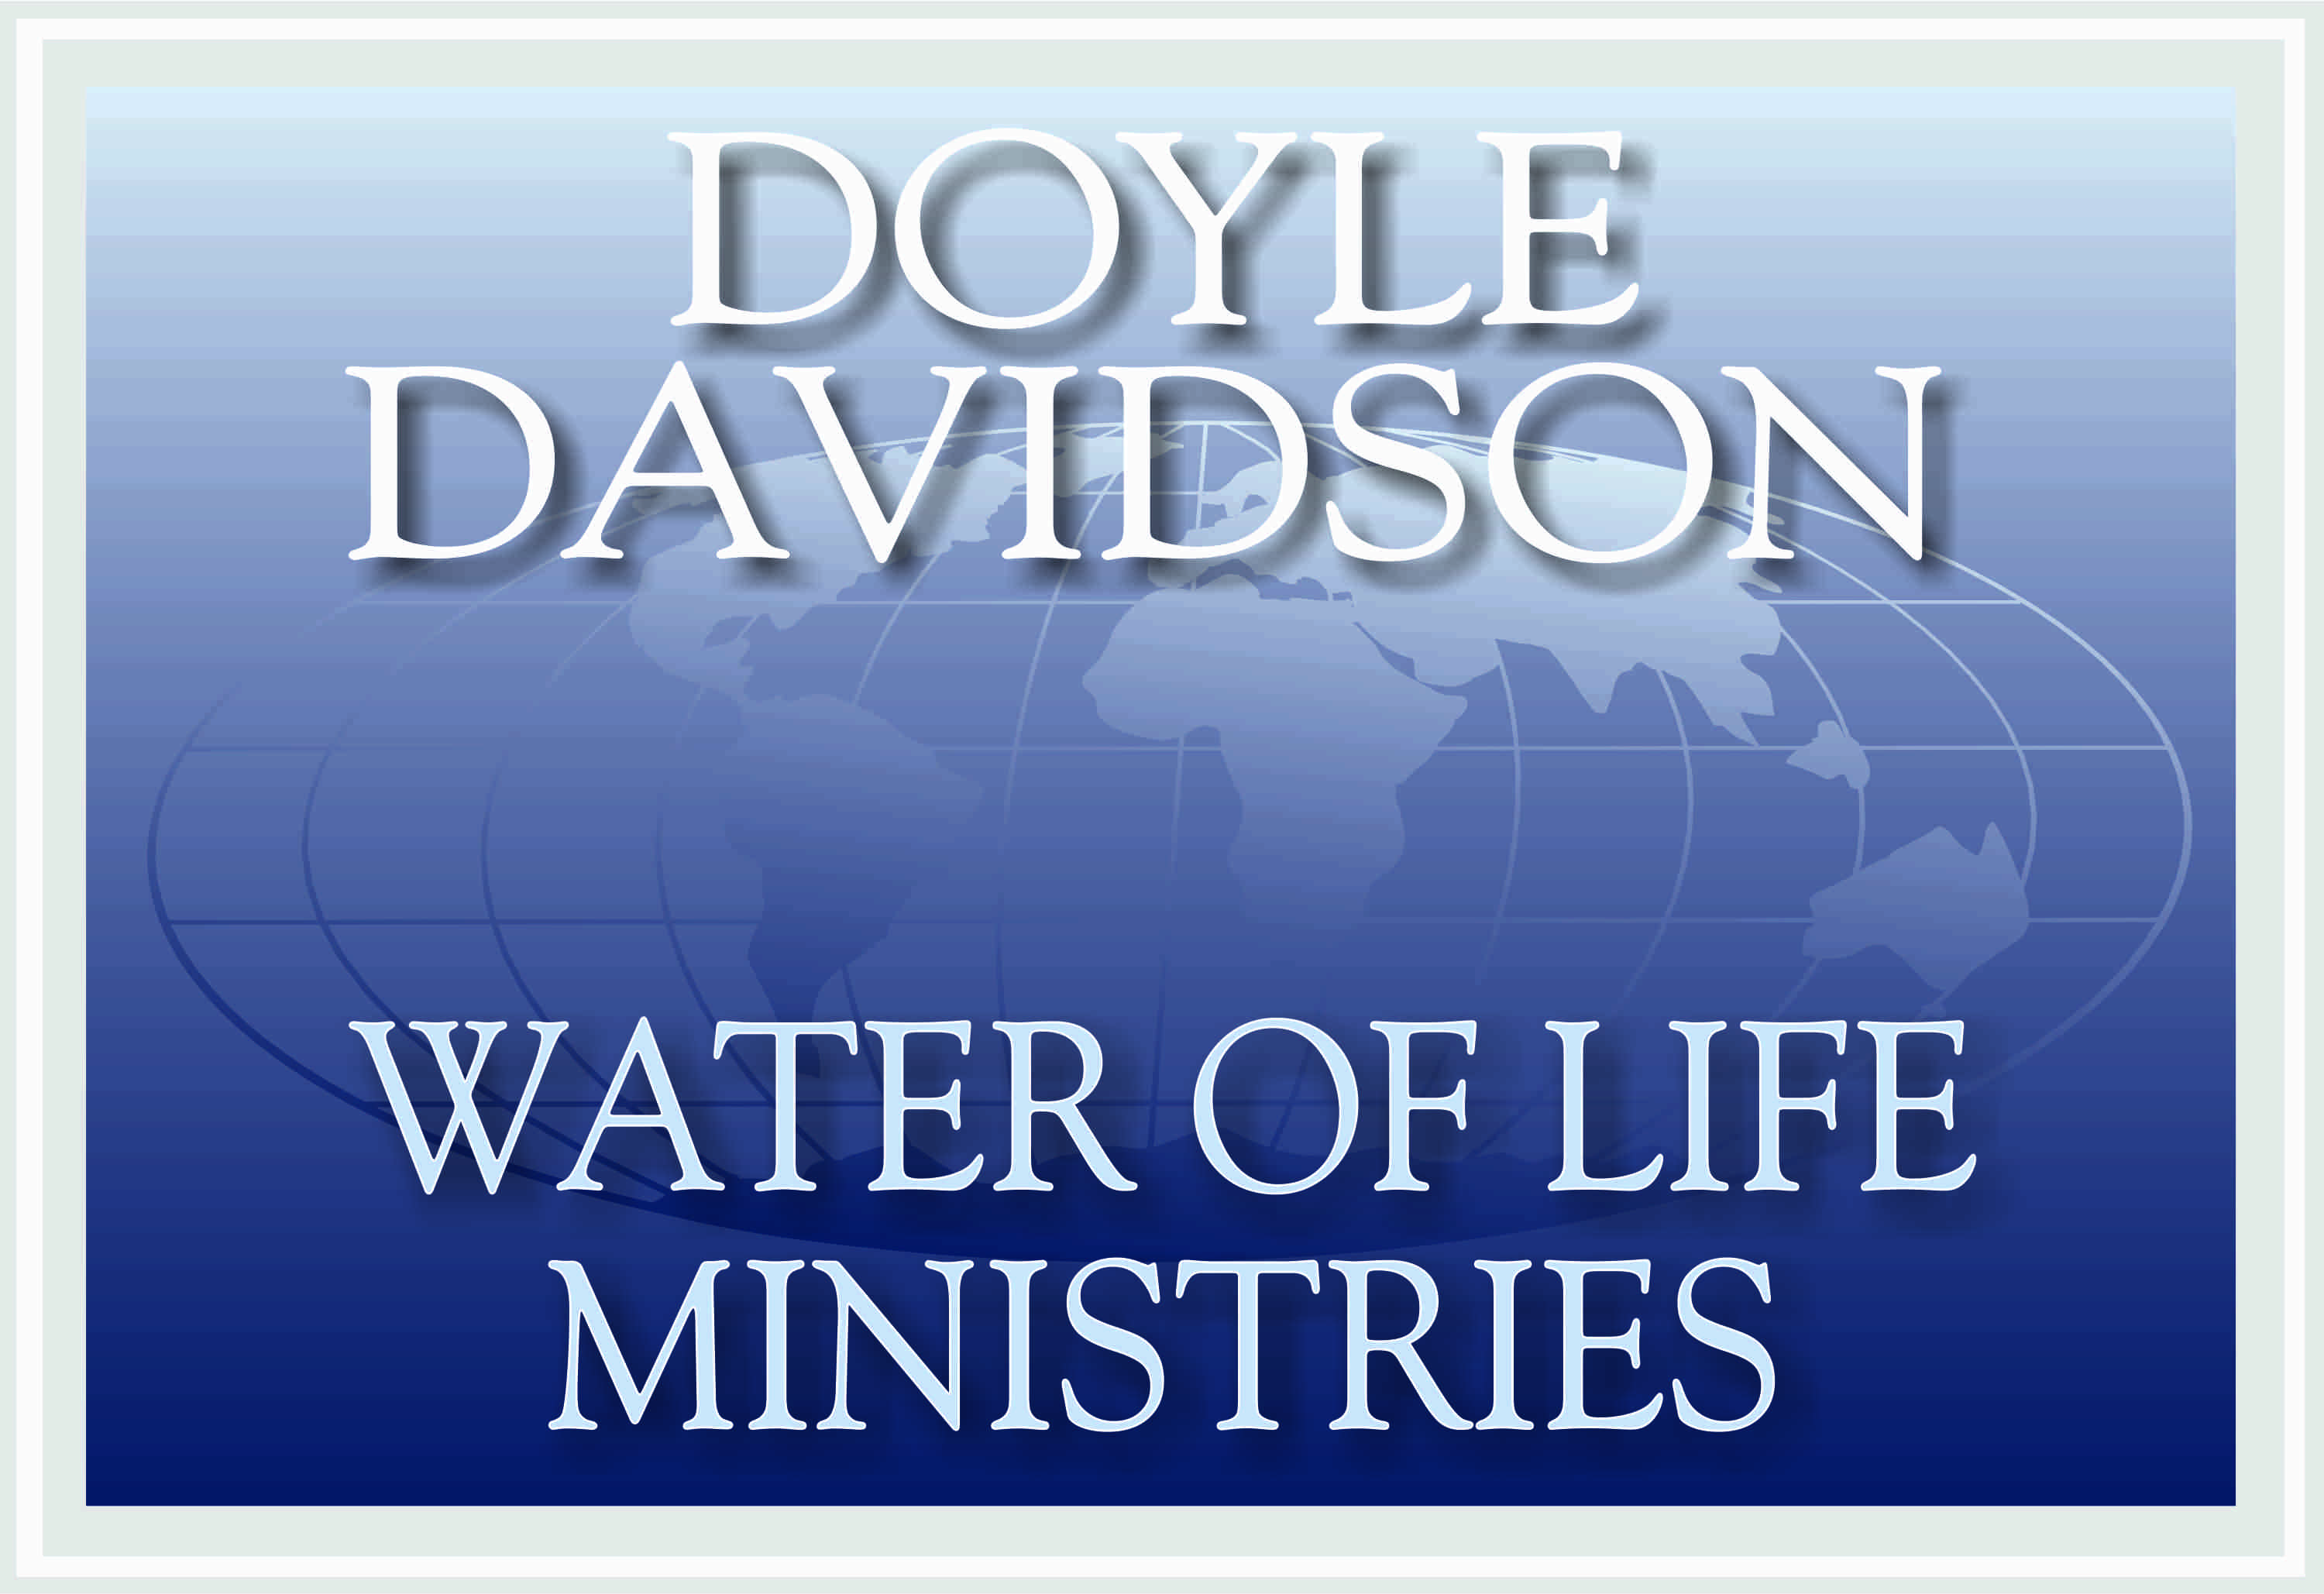 Doyle Davidson & Water of Life Ministries